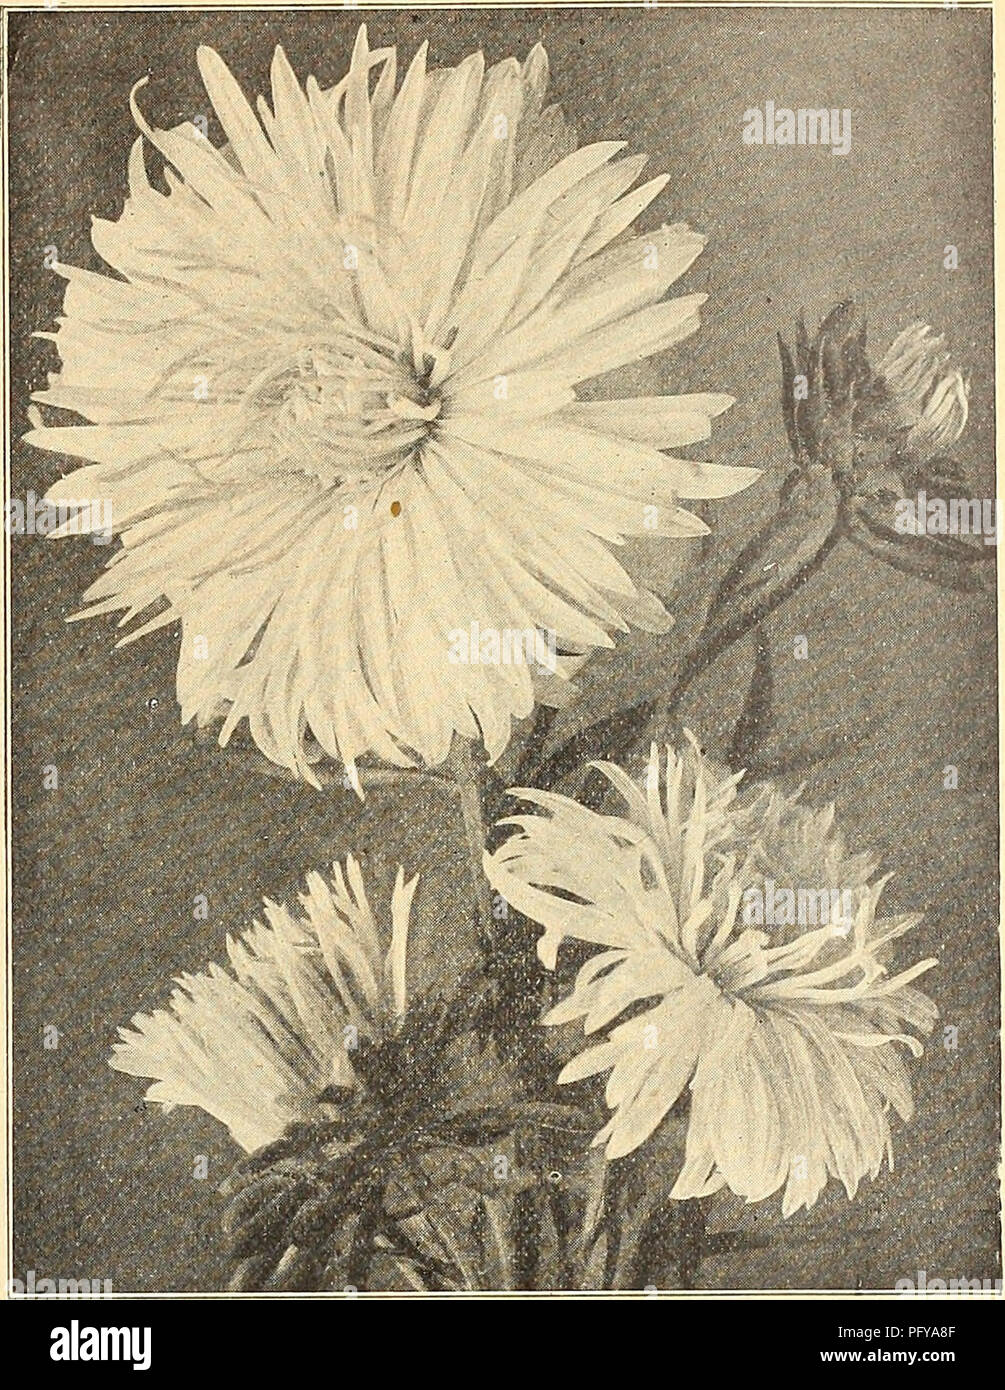 . Currie's farm & garden annual : spring 1922 47th year. Flowers Seeds Catalogs; Bulbs (Plants) Seeds Catalogs; Vegetables Seeds Catalogs; Nurseries (Horticulture) Catalogs; Plants, Ornamental Catalogs; Gardening Equipment and supplies Catalogs. LIST OF CHOICE ASTER SEEDS FOR 1922. 49 CURRIE'S CHOICE ASTERS ASTERMUM. Pkt. A splendid new type of the Hohenzollern Aster, of Im- mense size, with very full center. The plant reaches a height of from 18 to 24 inches, growing very straight, with strong, sturdy stems, starting near the base. We offer it in three colors, White, Pink, Laven- der and  - Stock Image